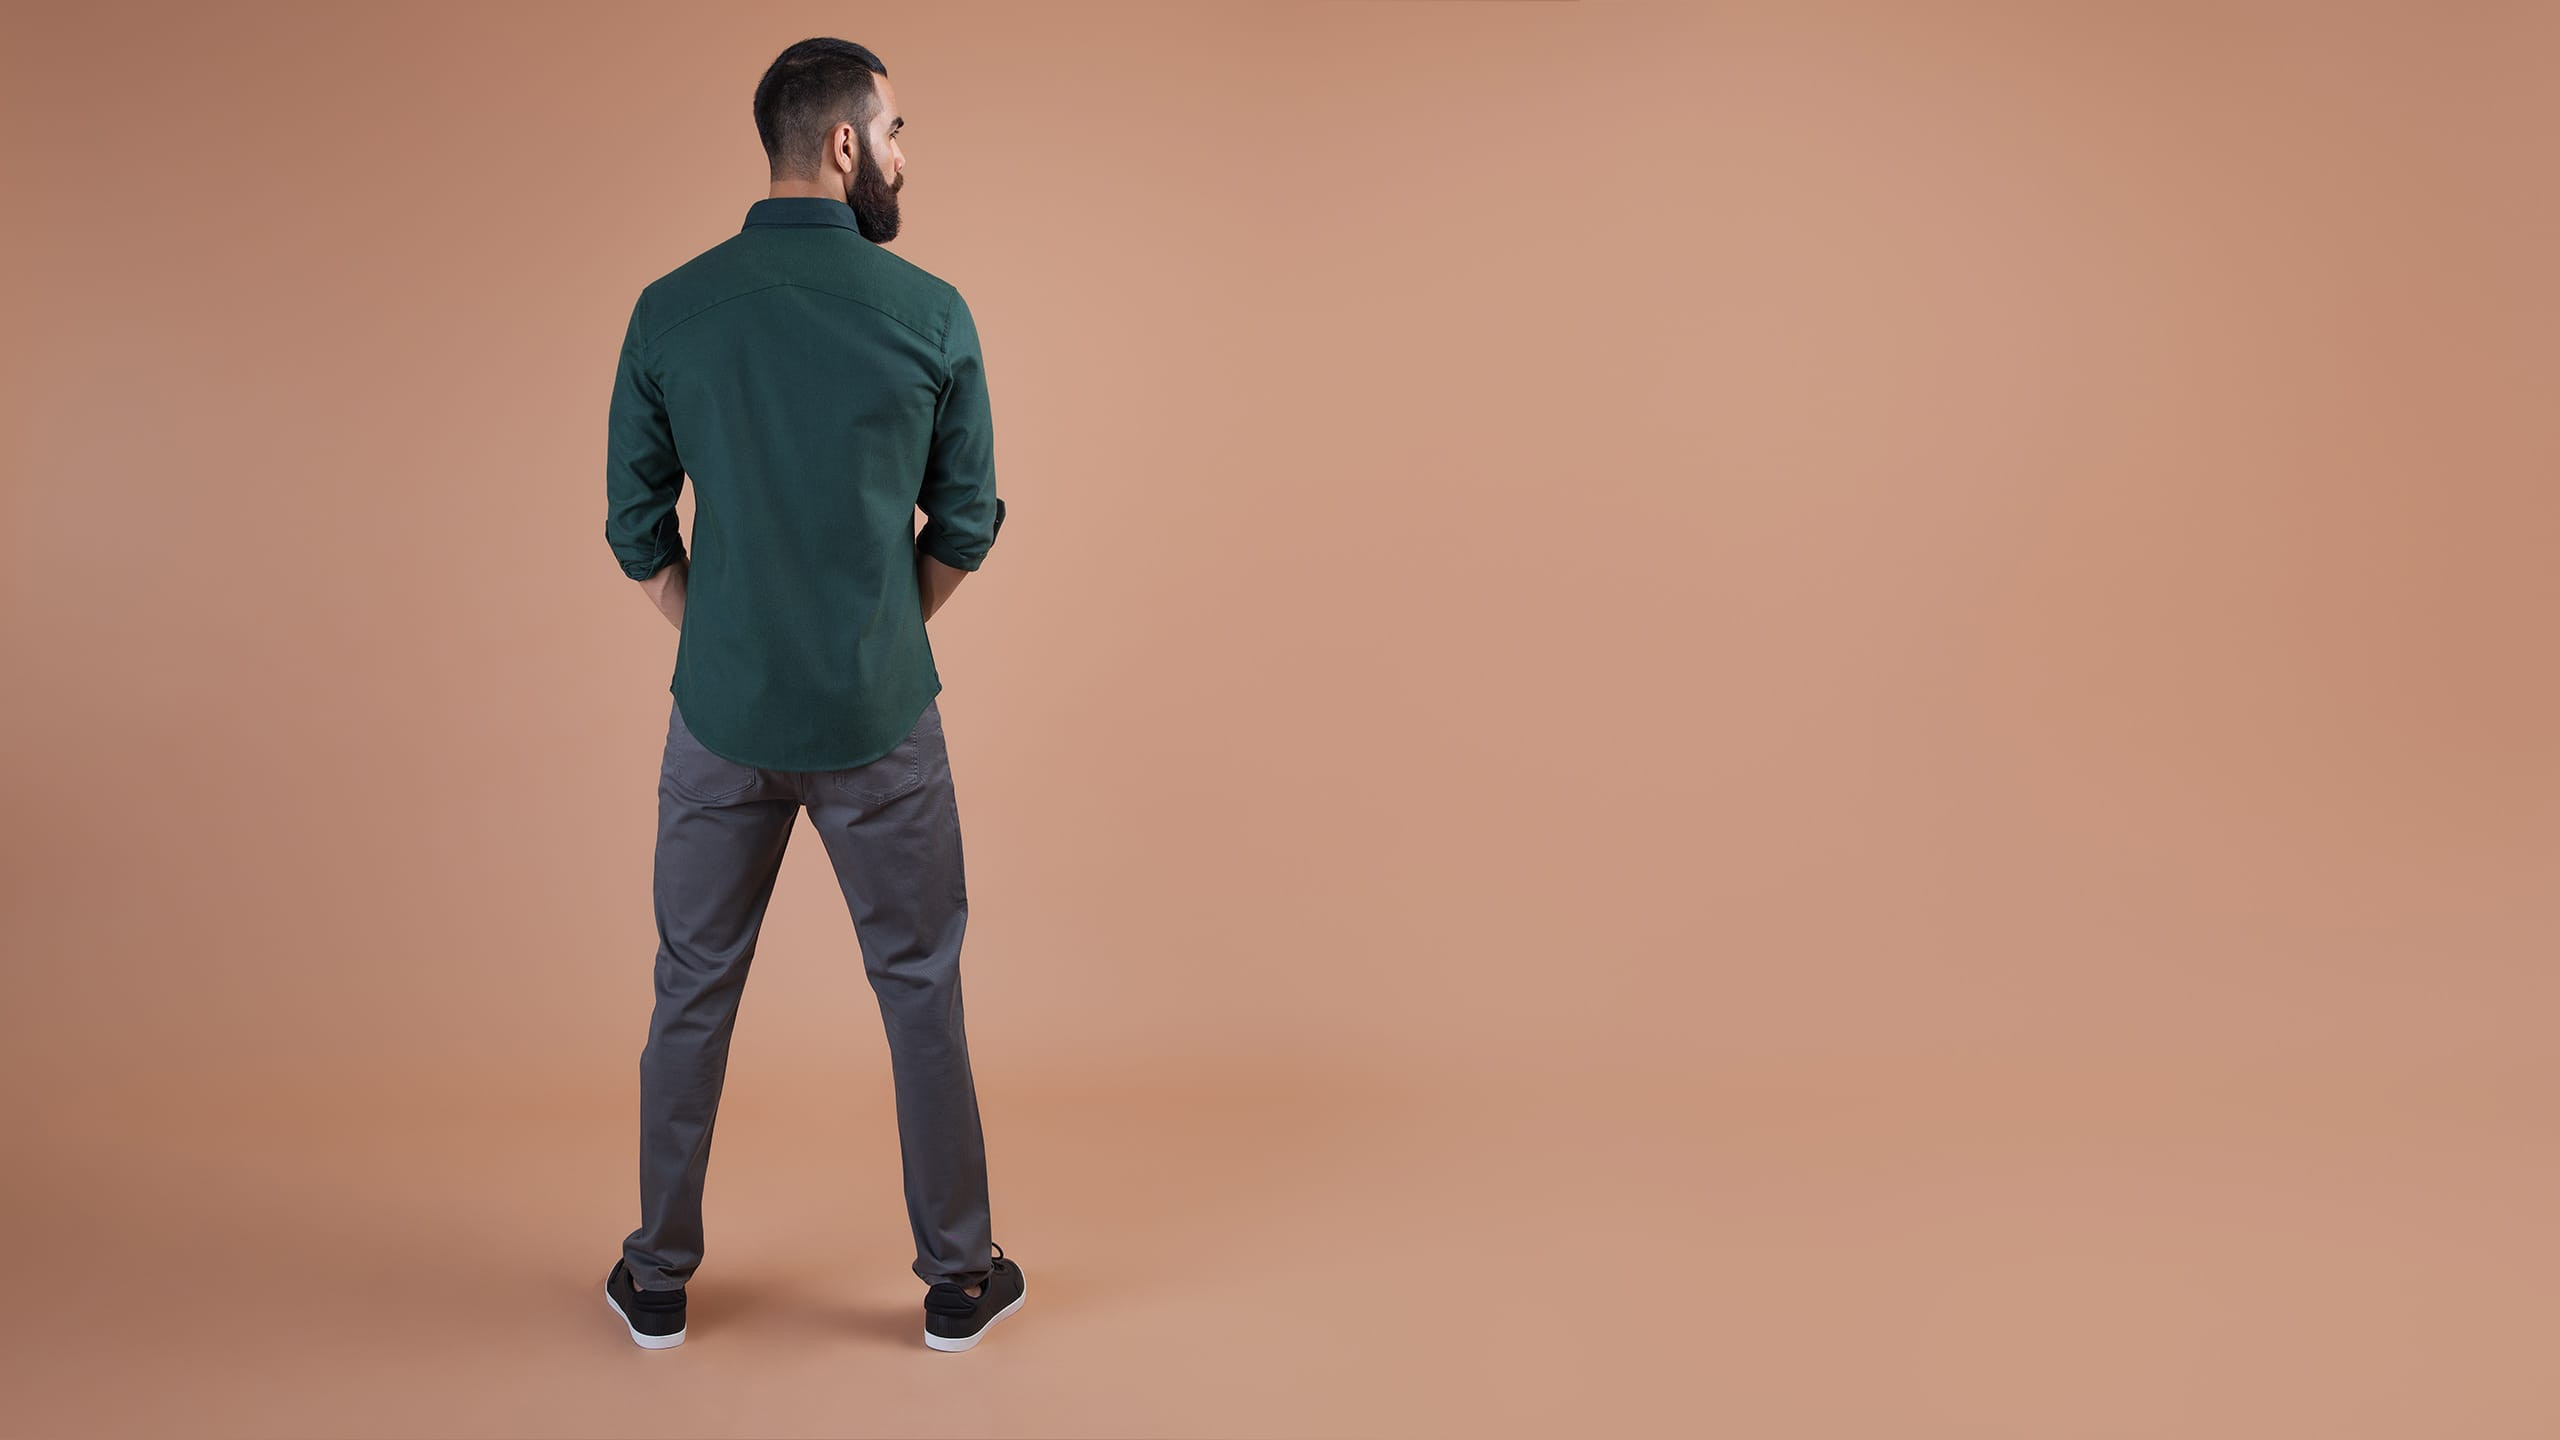 Buy Hues of Green shirt online